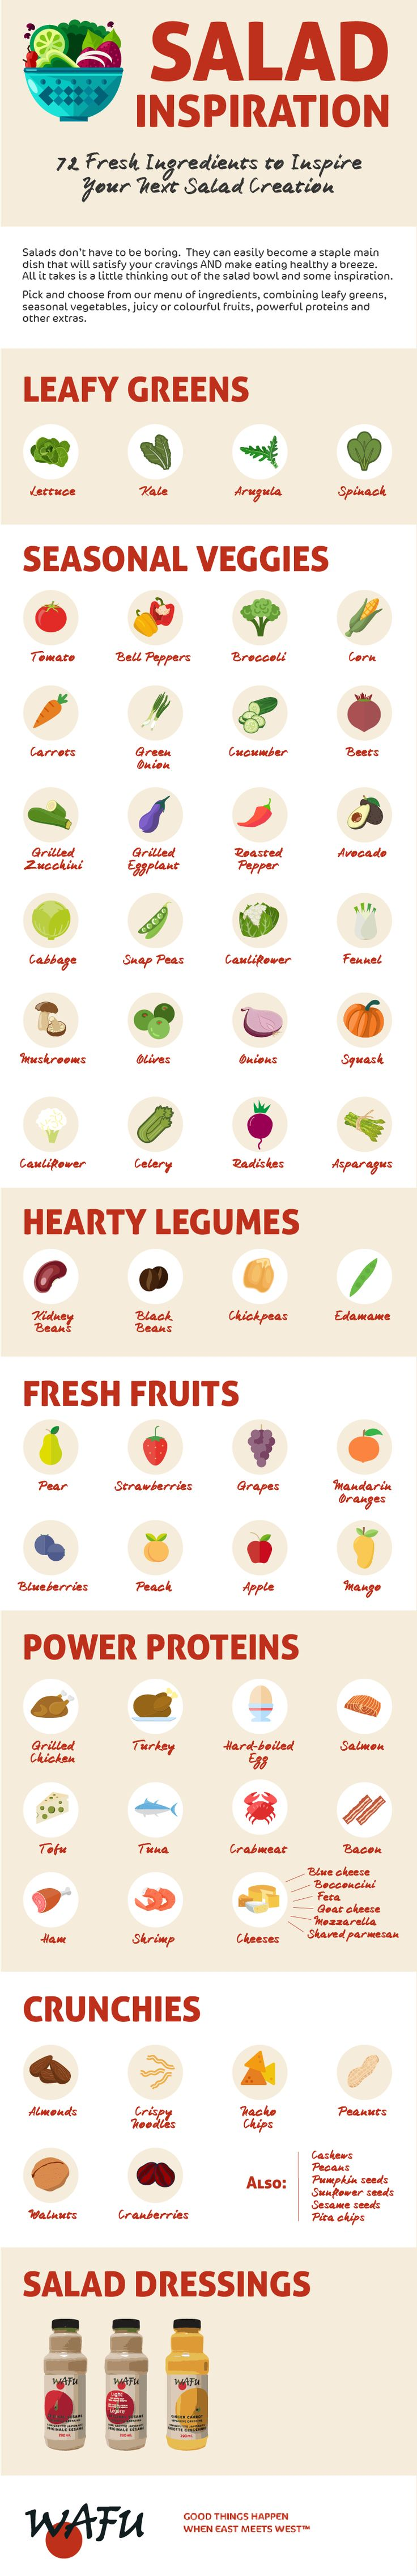 Salads don't have to be boring. In this infographic, choose from our menu of leafy greens, seasonal veggies, juicy fruits, power proteins and other extras.